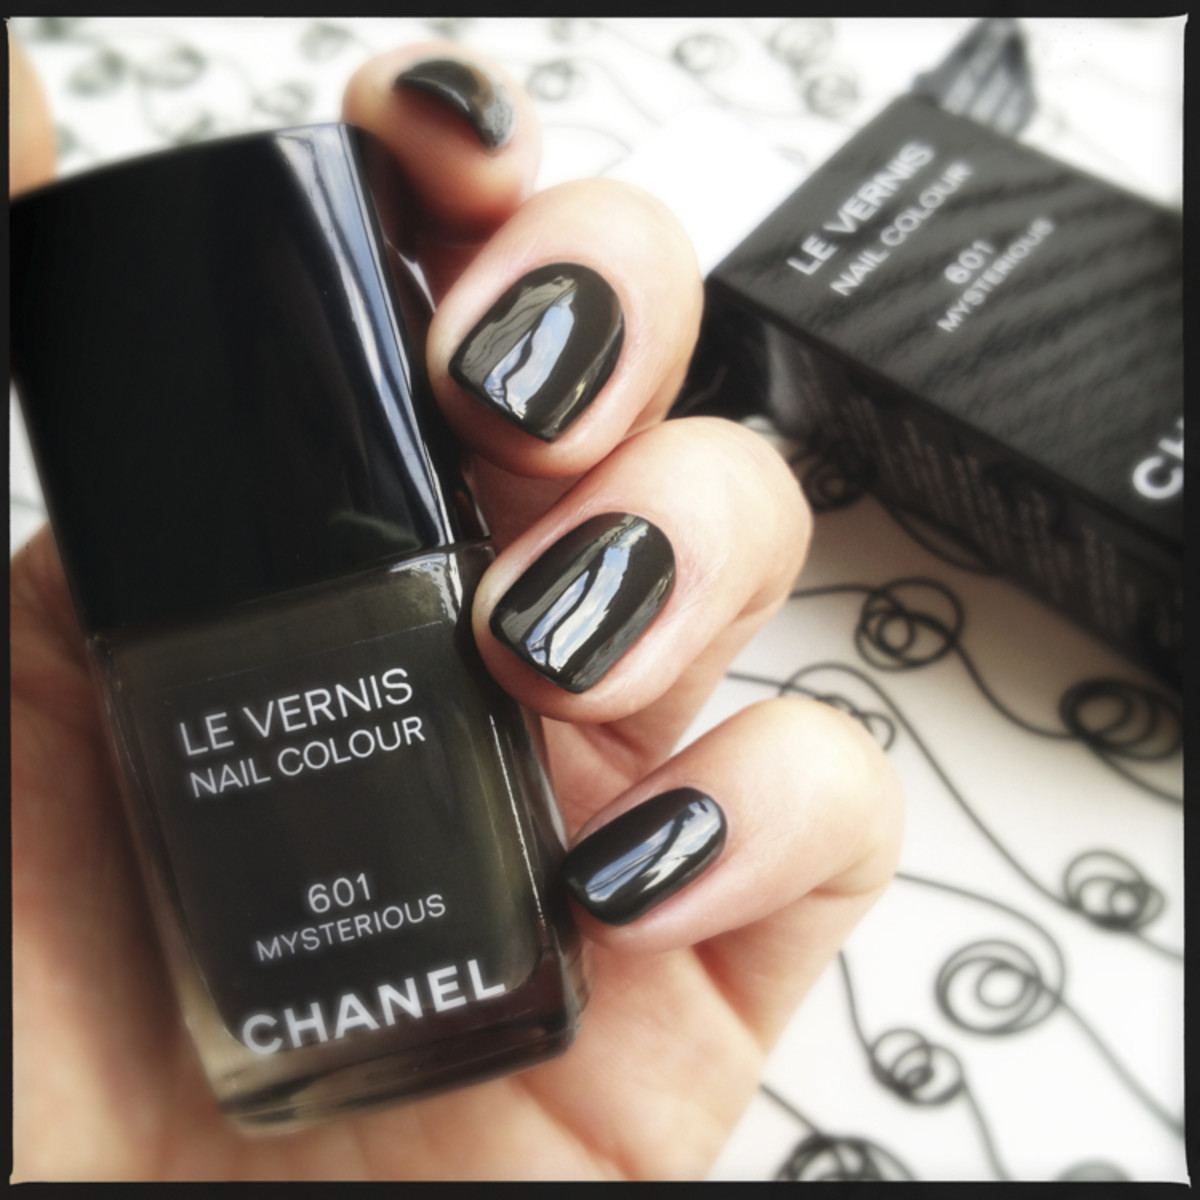 Chanel Mysterious 601